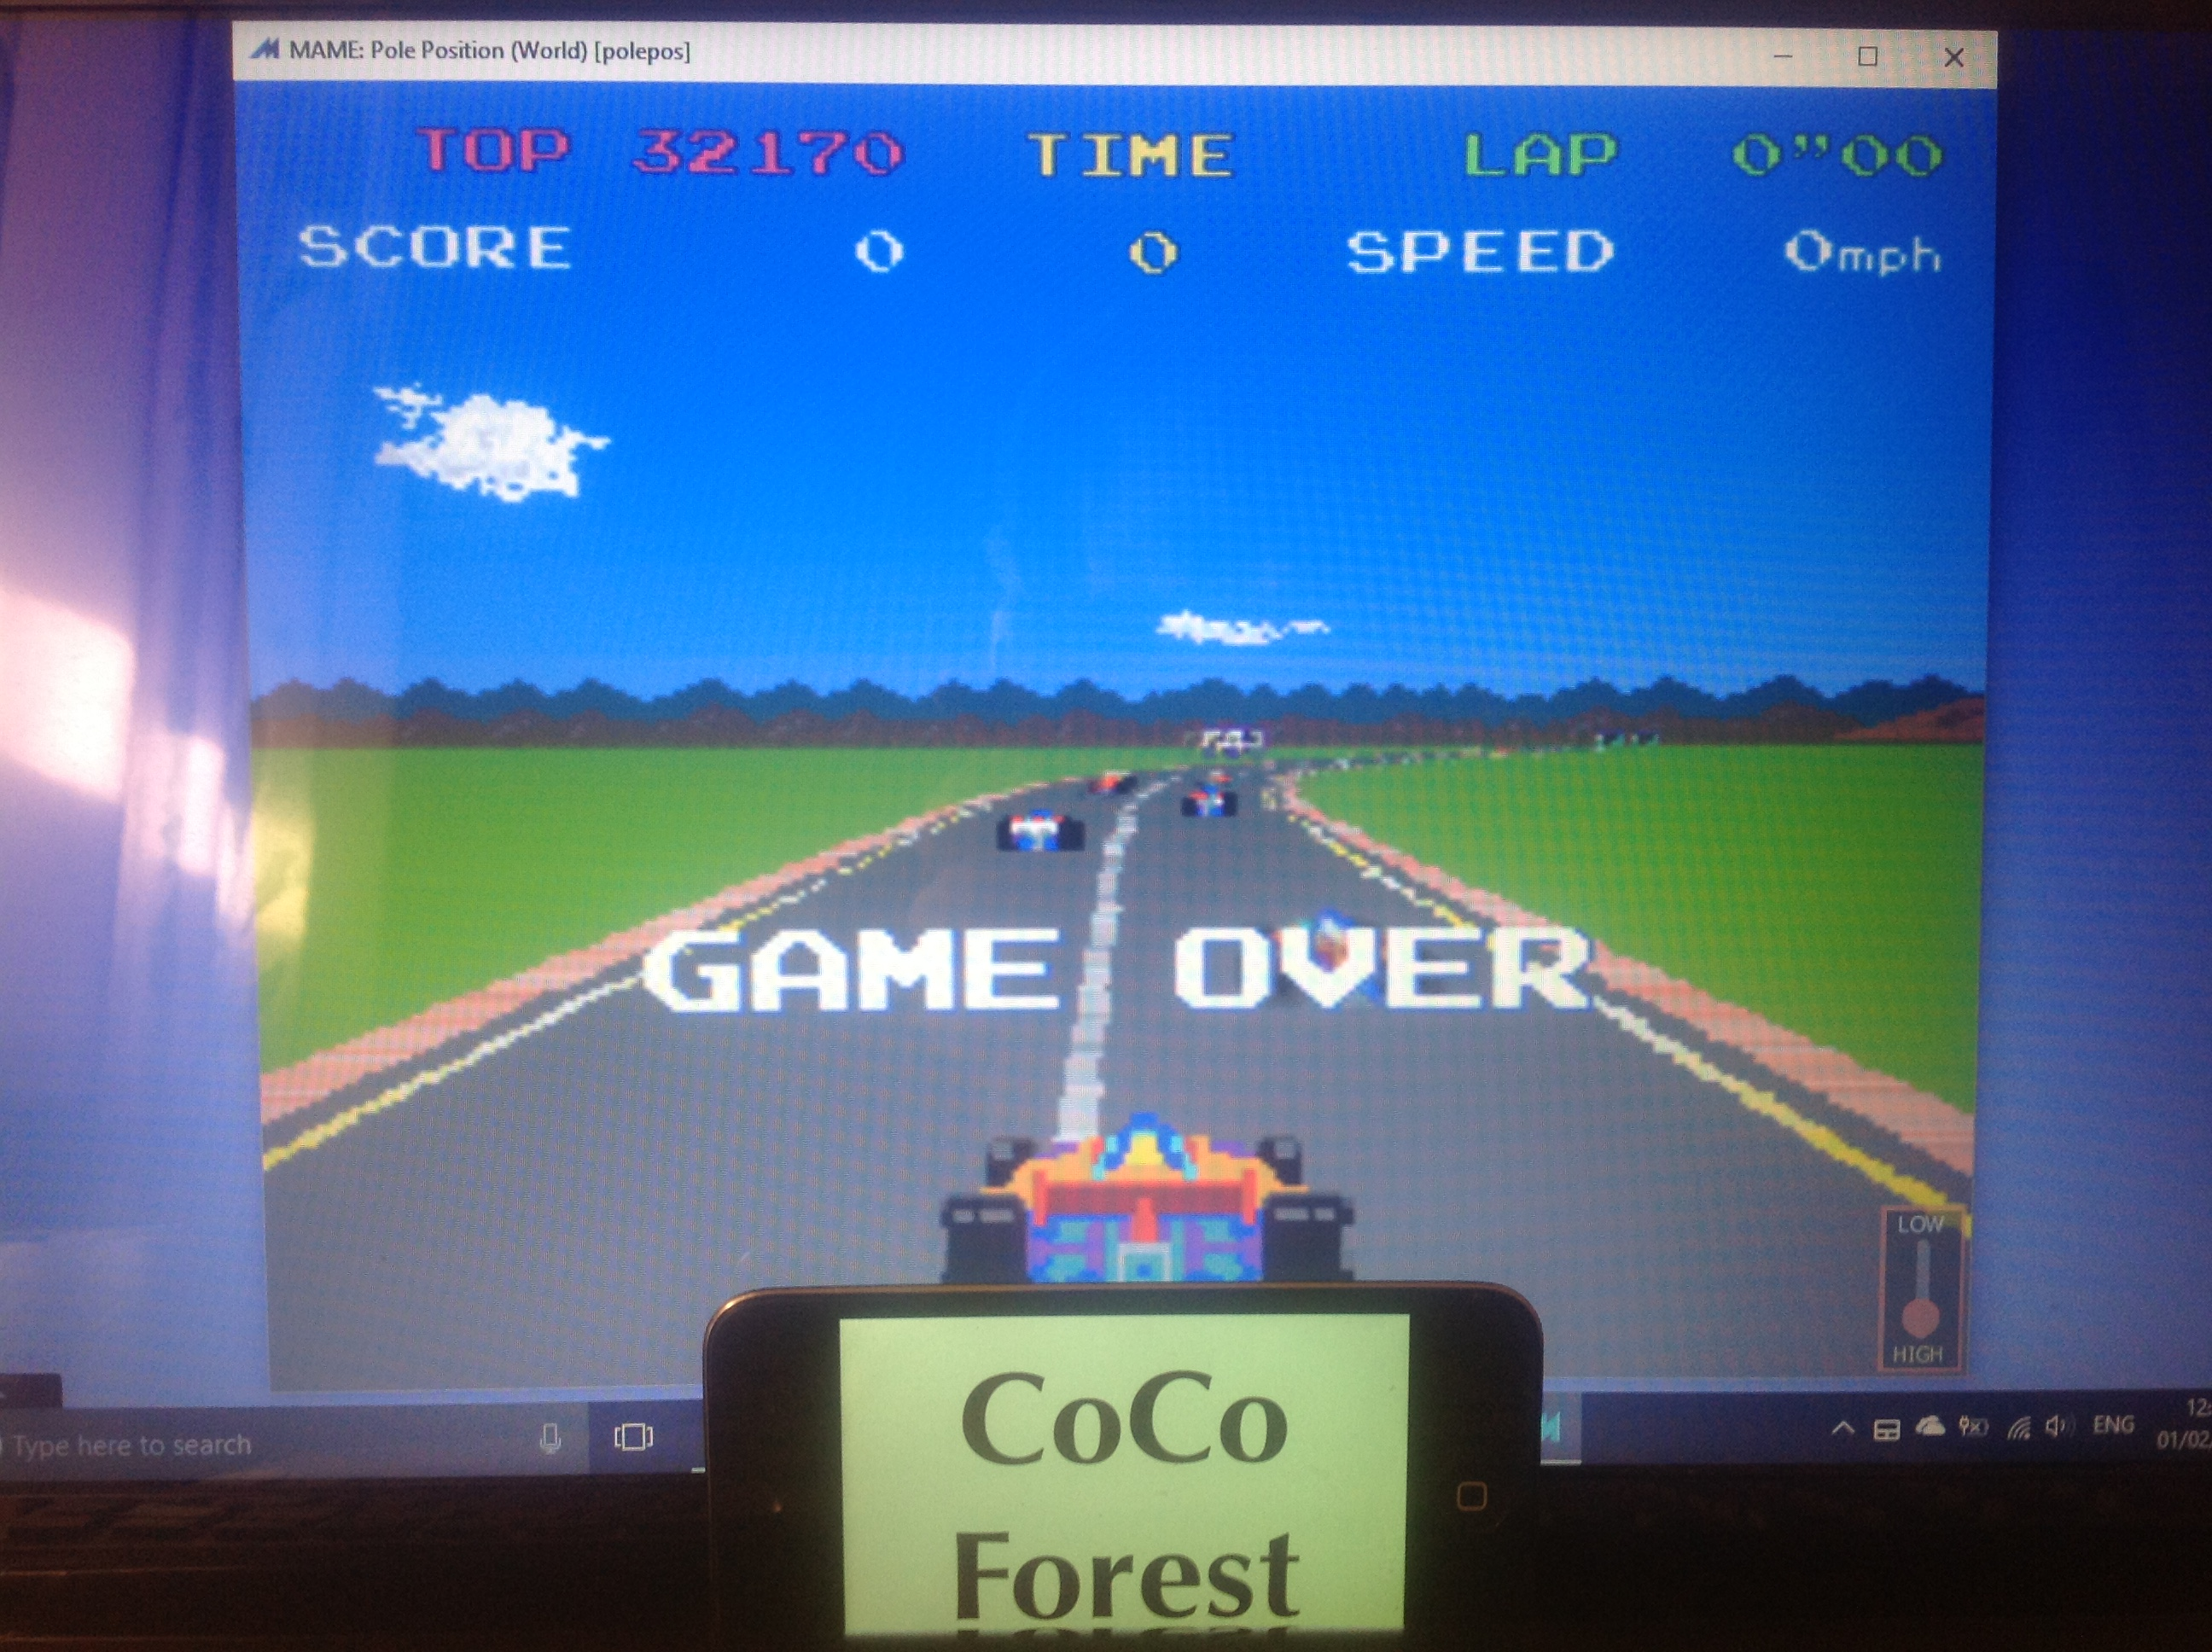 CoCoForest: Pole Position (Arcade Emulated / M.A.M.E.) 32,170 points on 2018-02-01 06:46:38